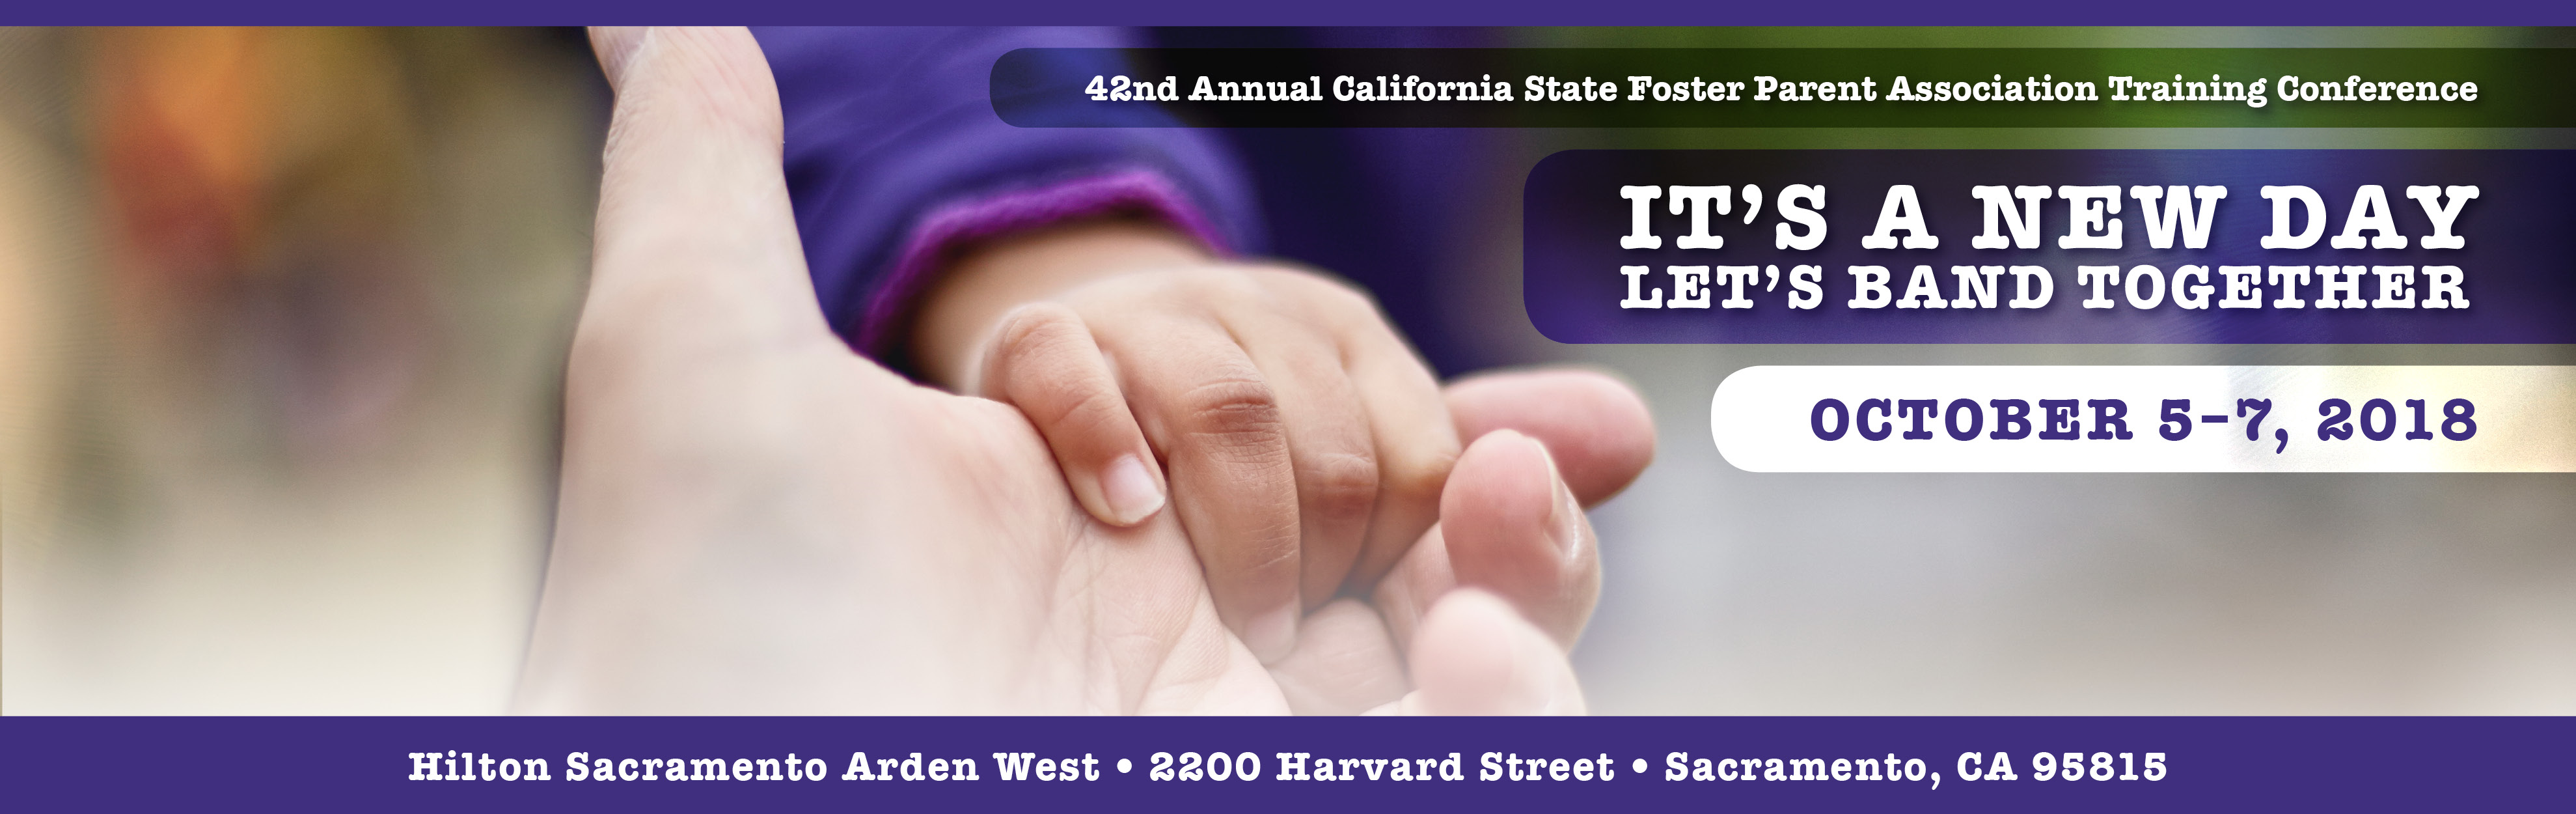 The 42nd Annual Foster Parent Training Conference